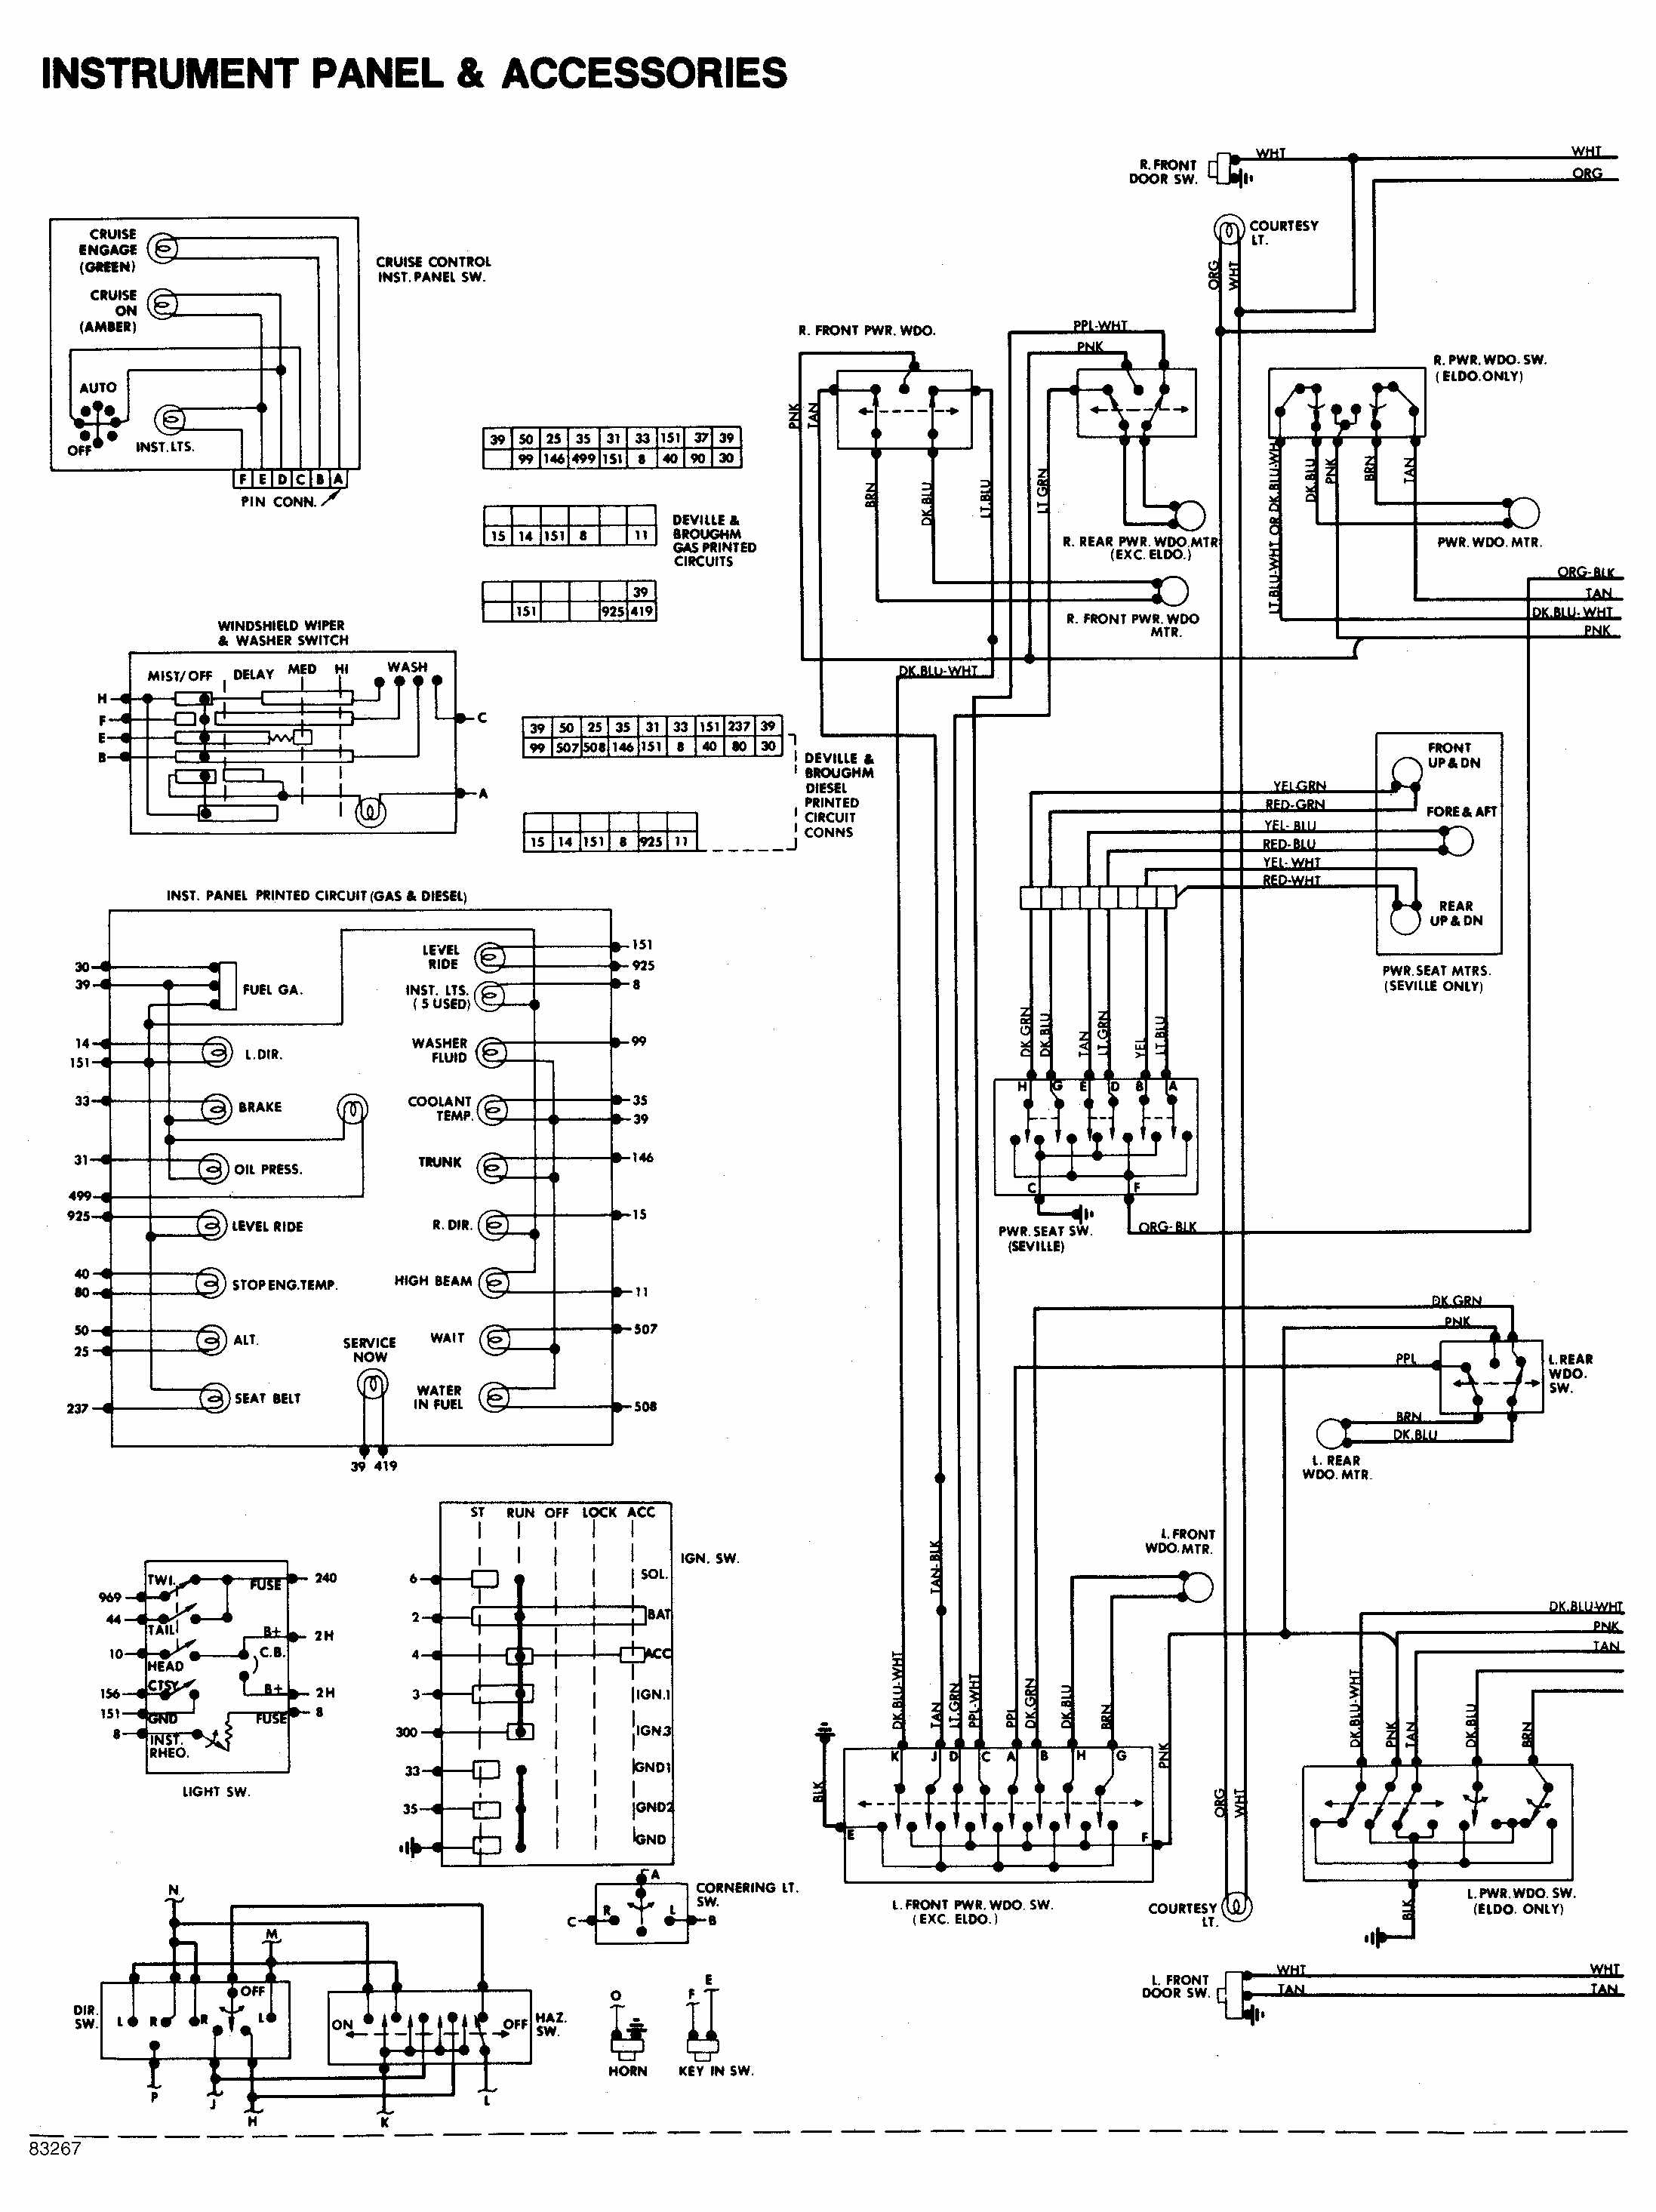 2006 Ford Mustang Power Window Wiring Harness Worksheet And 1989 Fuse Box Diagram Chevy Diagrams Rh Wizard Com 65 Dash Panel 1988 1993 Gt